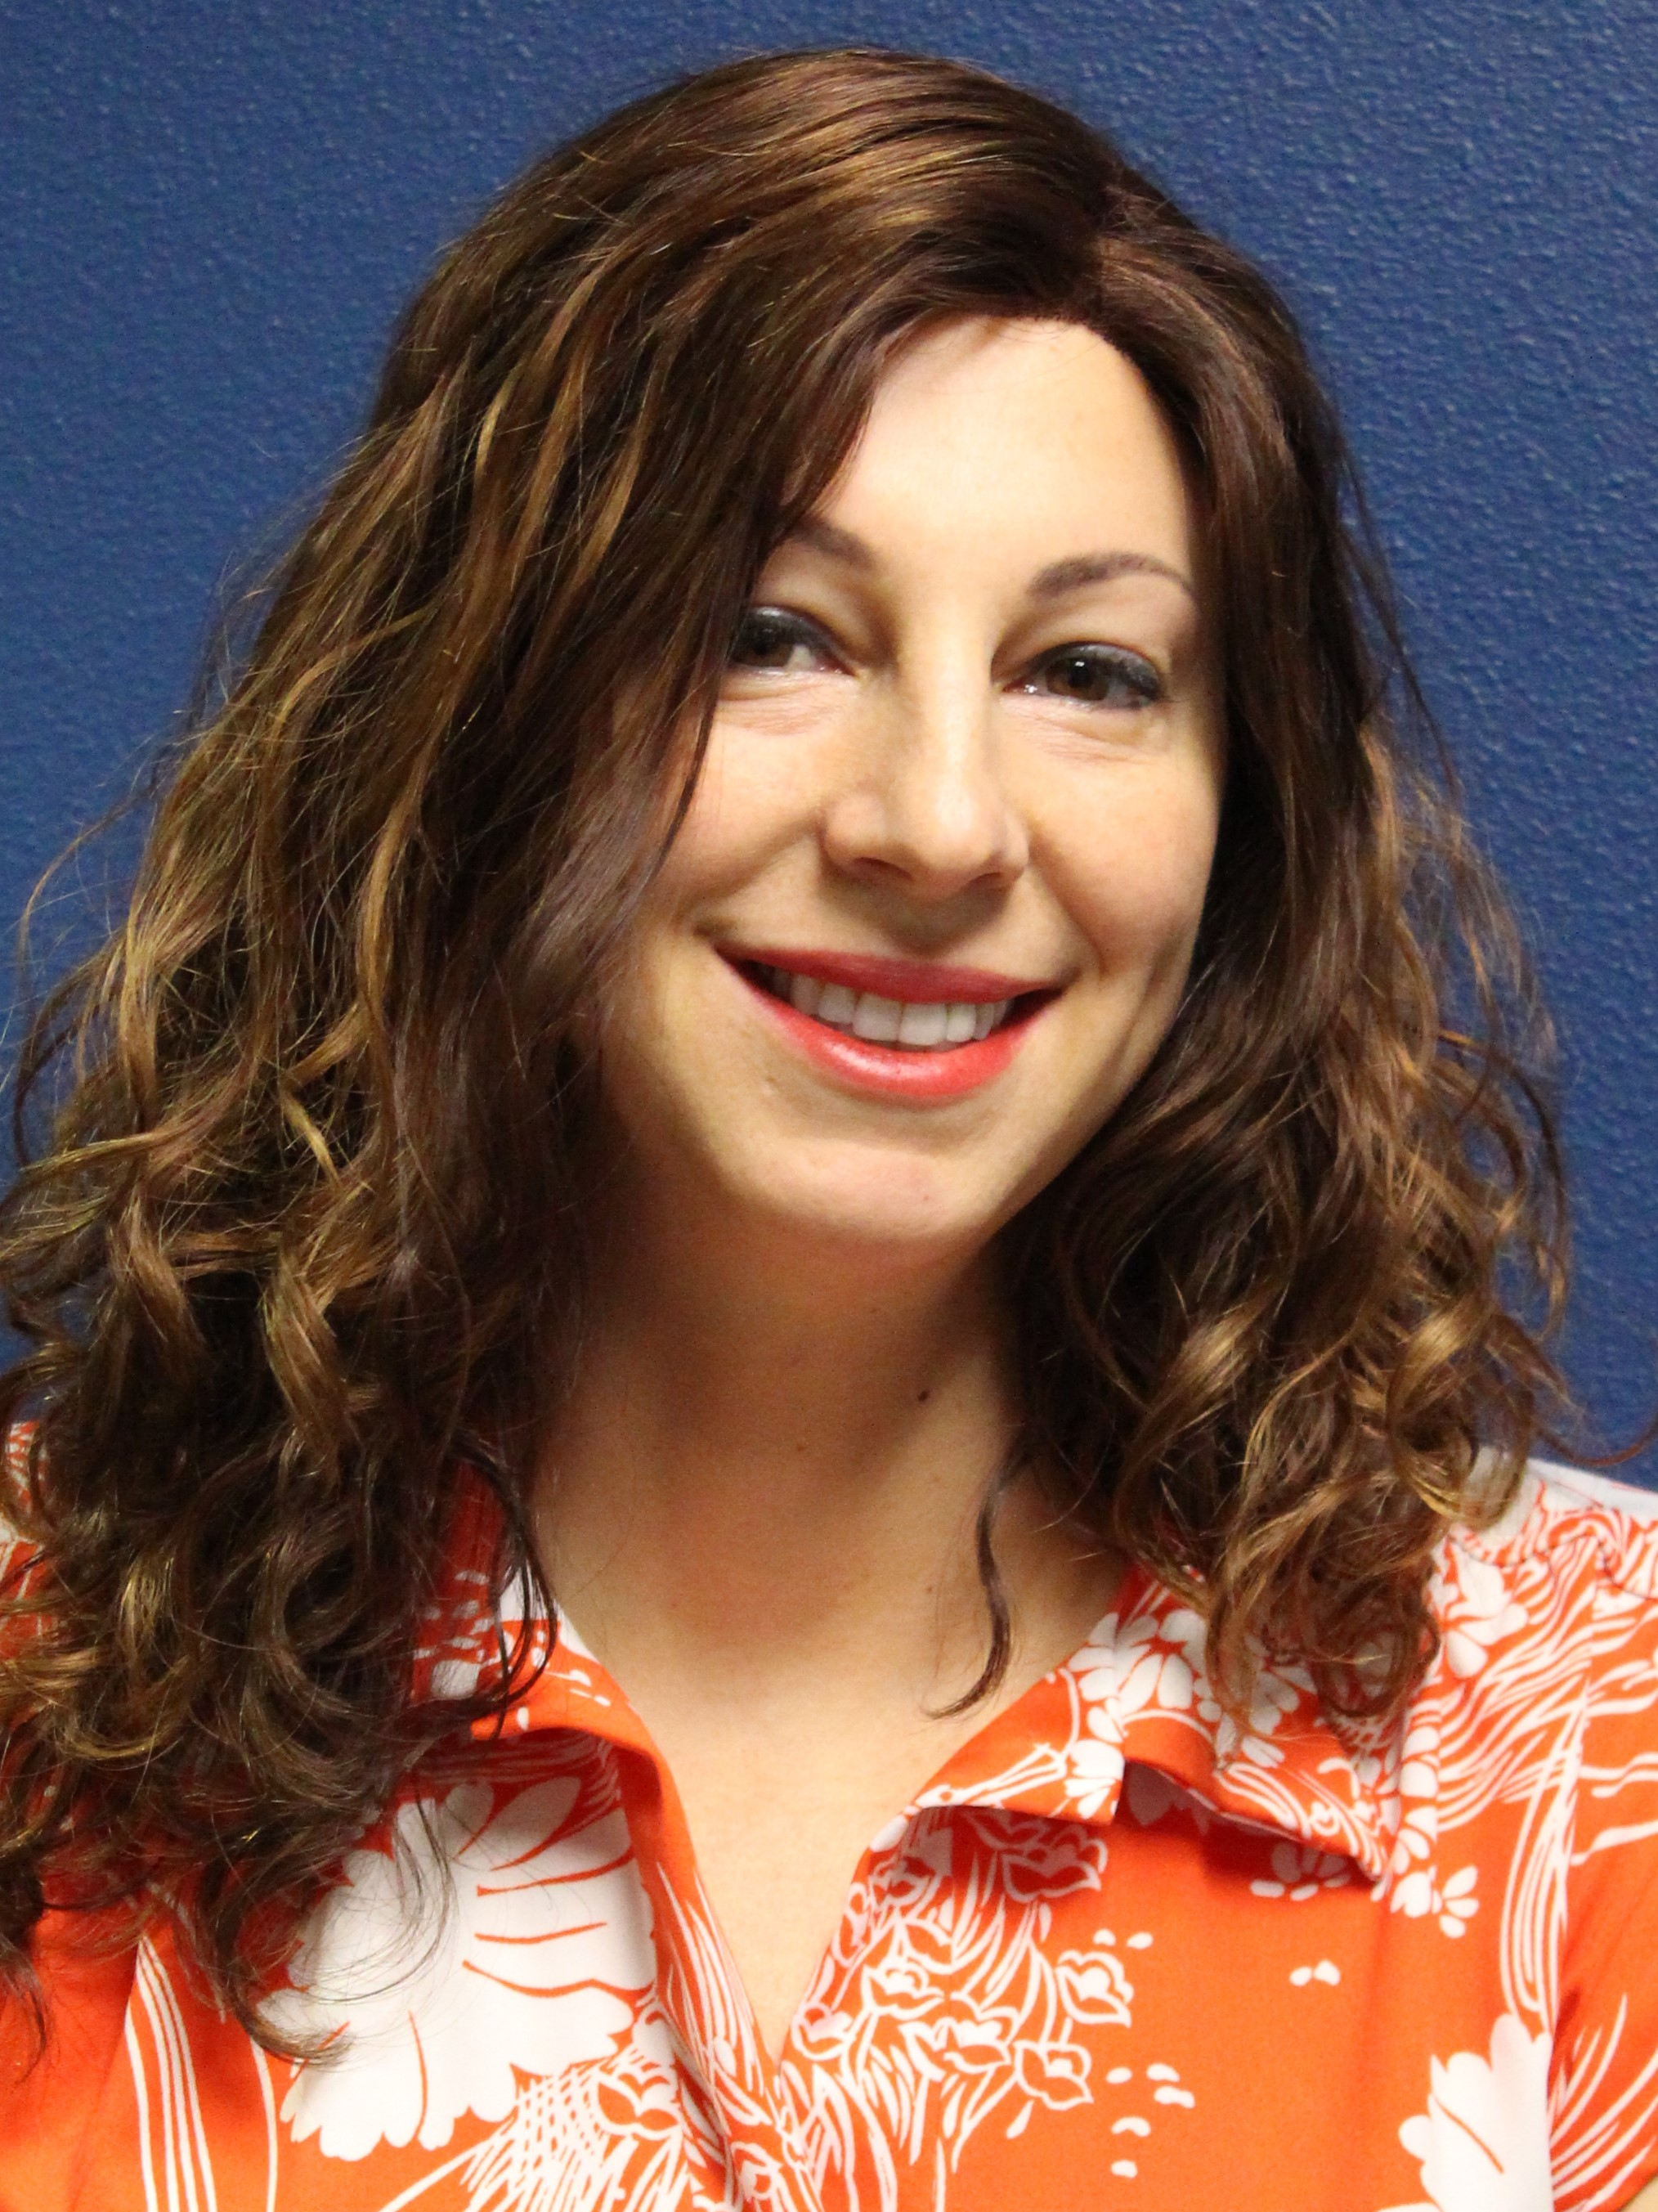 Corwin Beverage Appoints Anna Abatzoglou as Director of Marketing